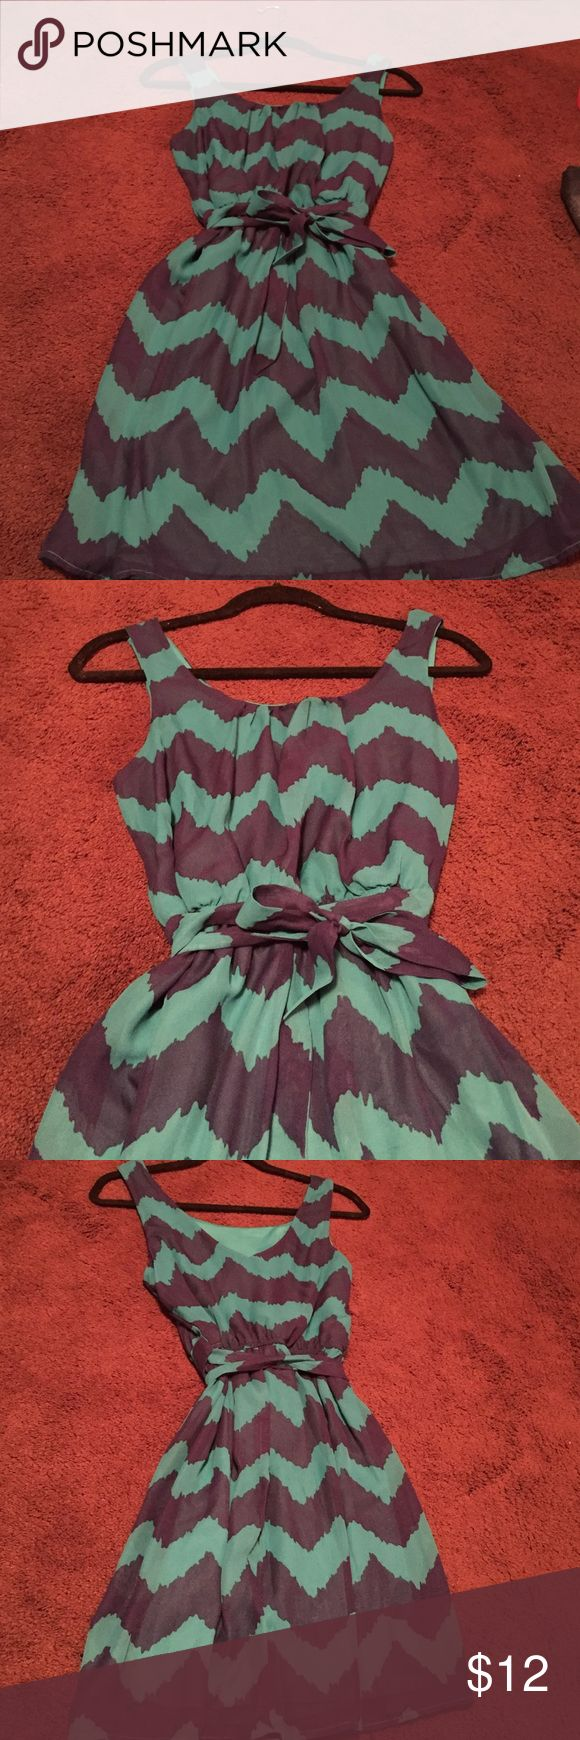 Teal and navy chevron dress Teal and chevron navy dress - in excellent condition - worn once - ties around the waste Lily Rose Dresses